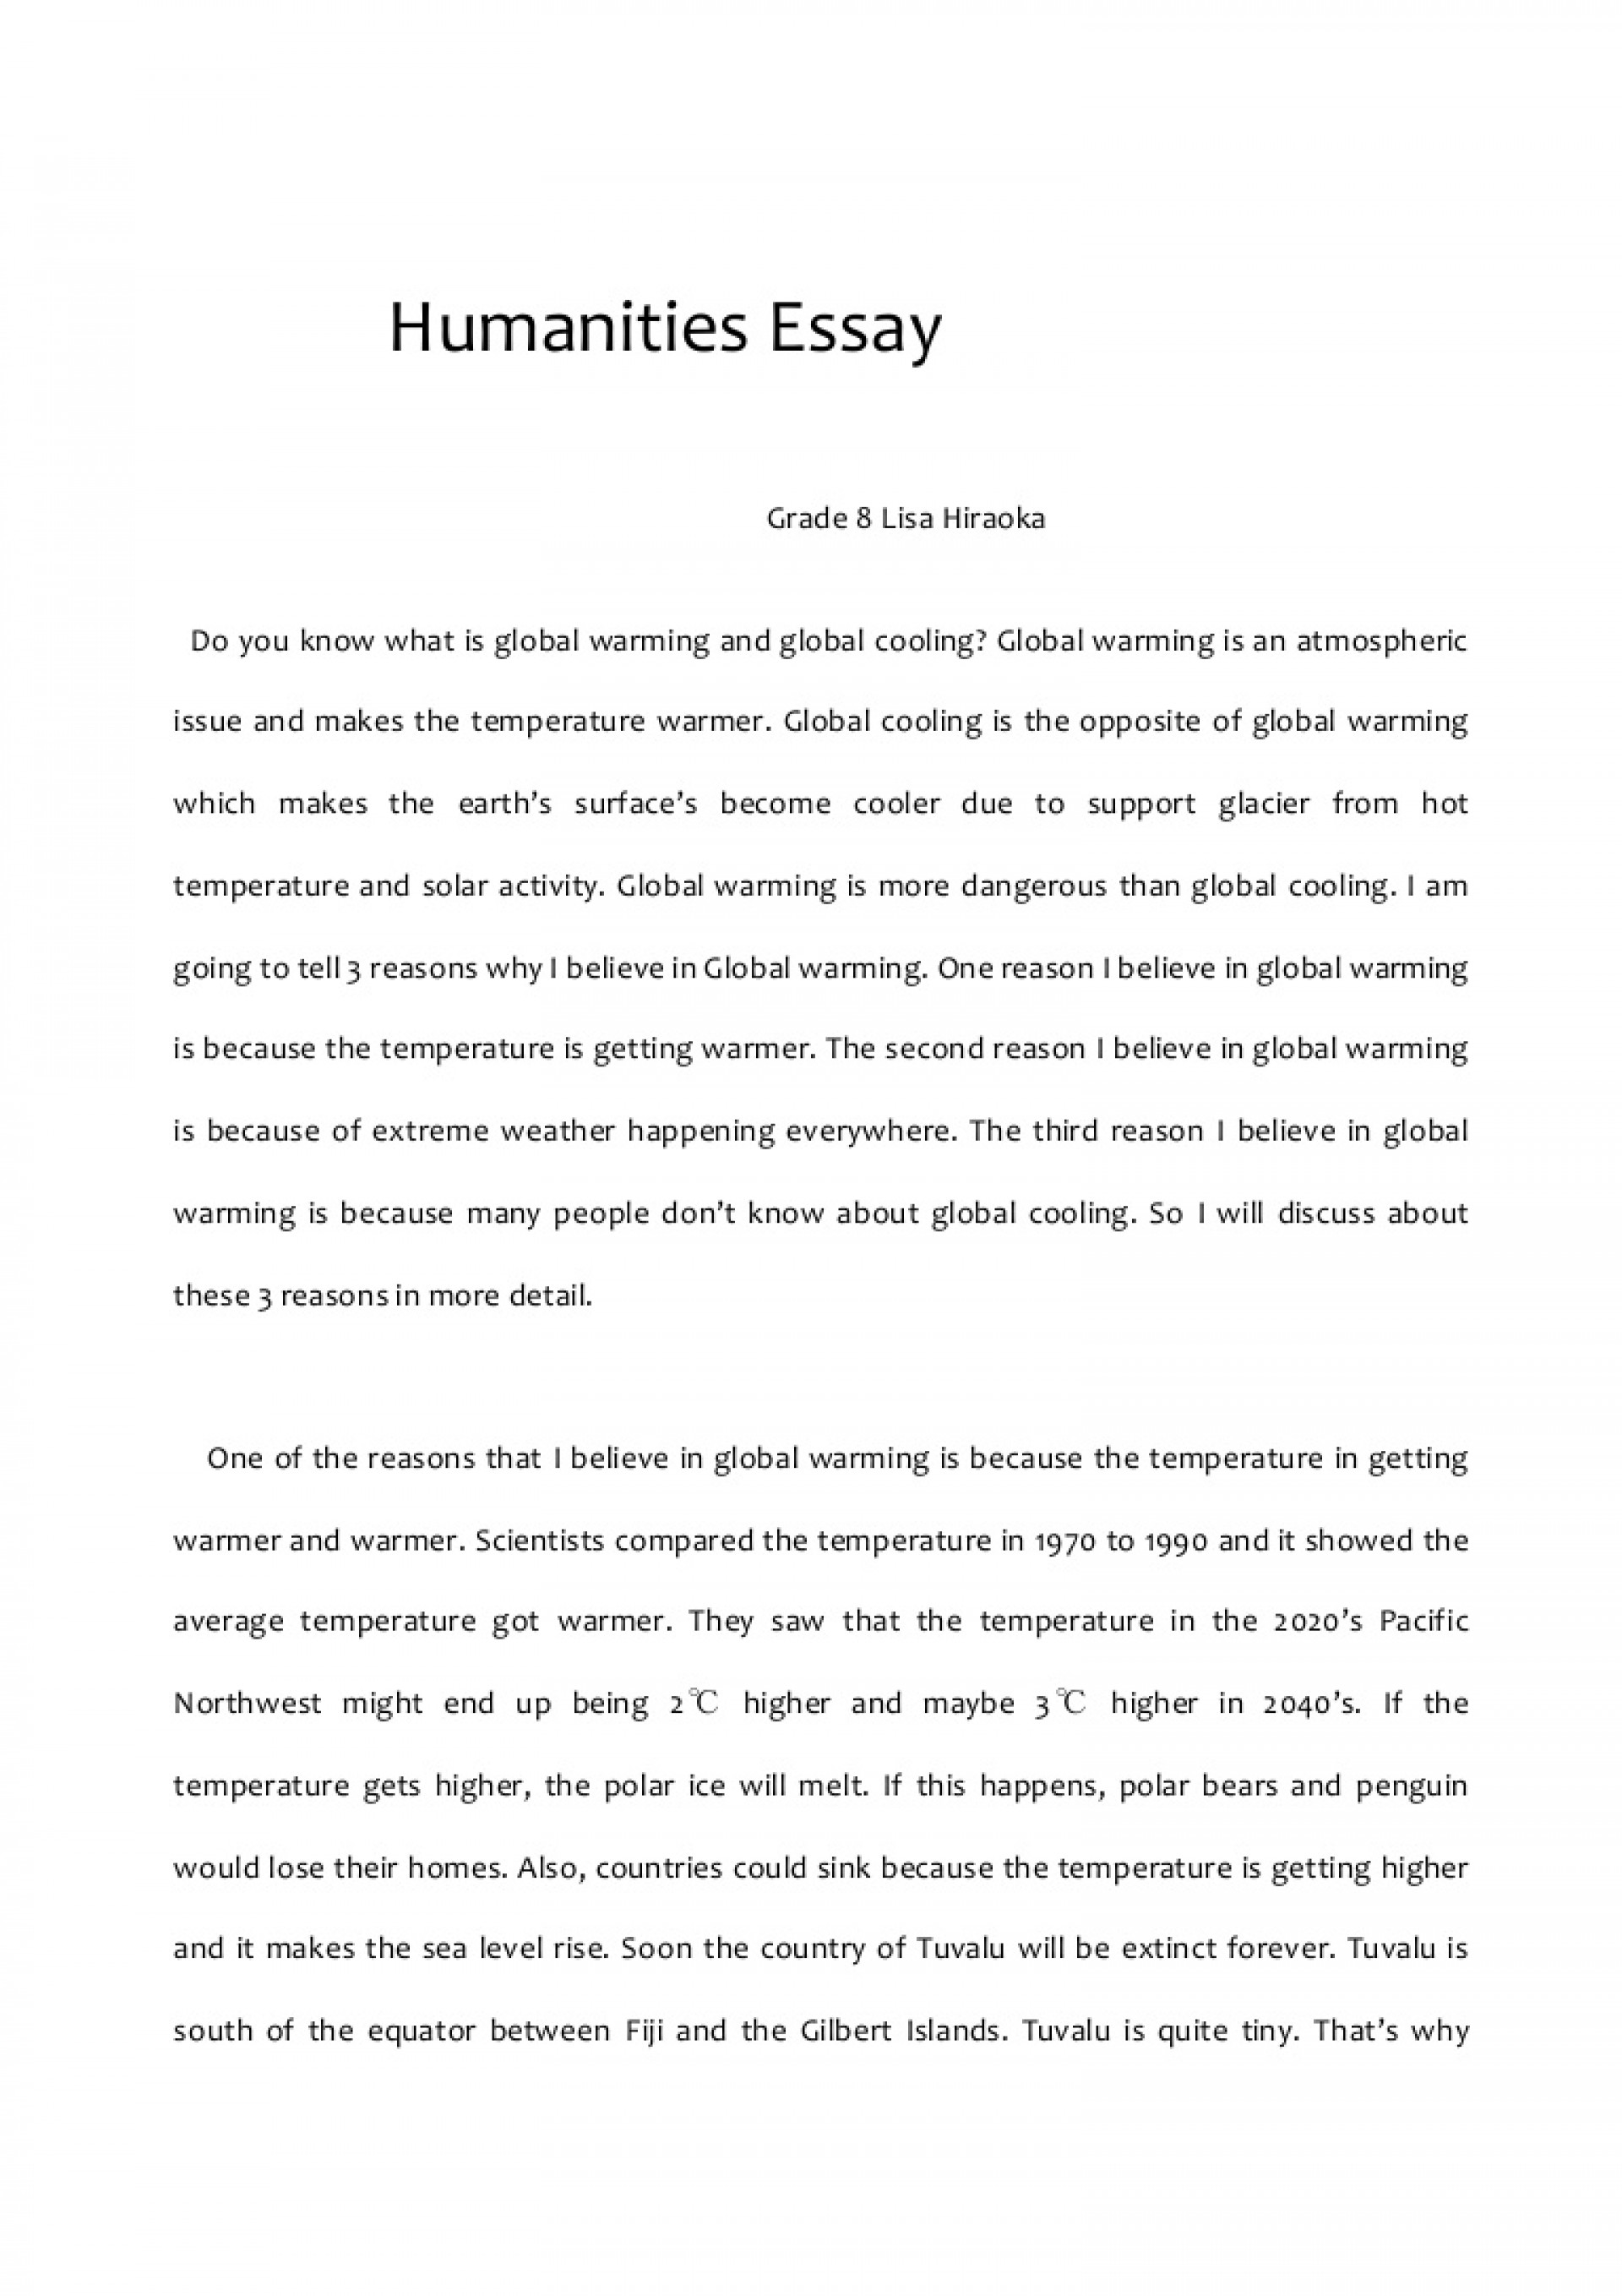 006 Global Warming Essay Humanitiesessay Phpapp02 Thumbnail Unusual Persuasive Thesis Free Research Paper Topics 1920